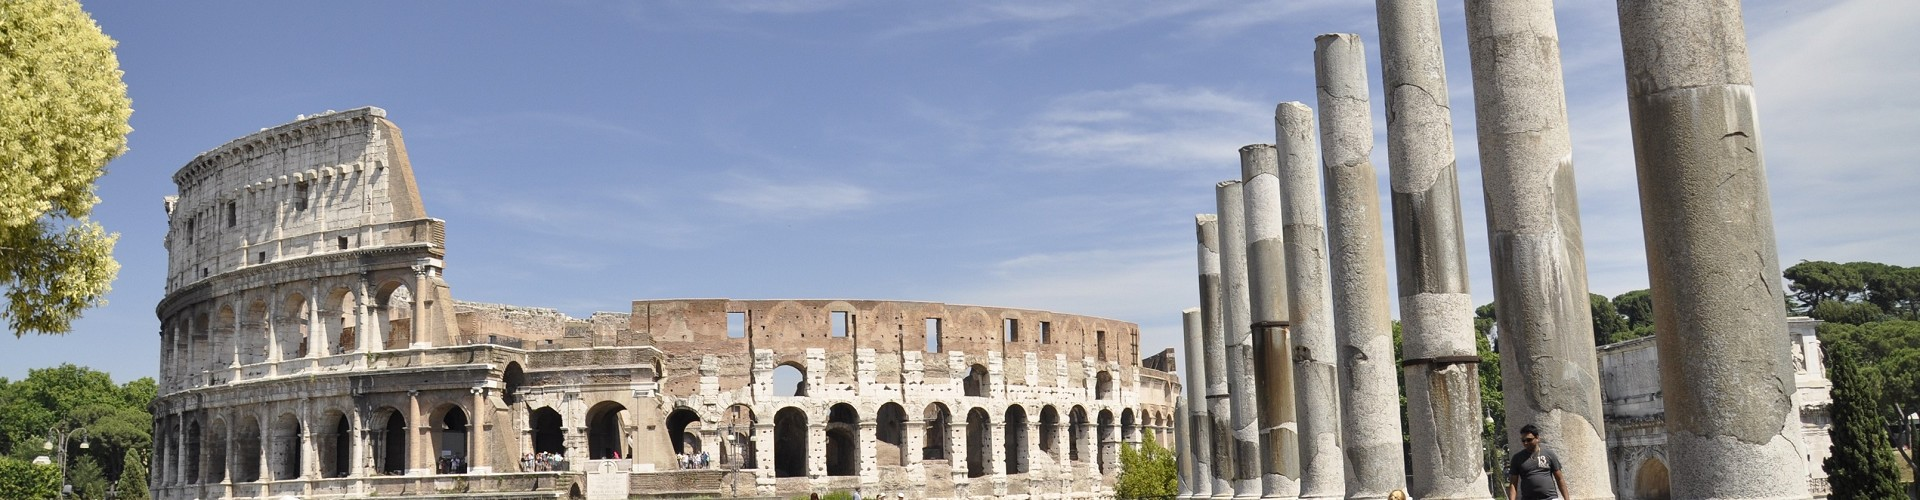 Rome Airport Transfers | Transfer from Fco Airport to Rome | LImone Lake Garda to Venice